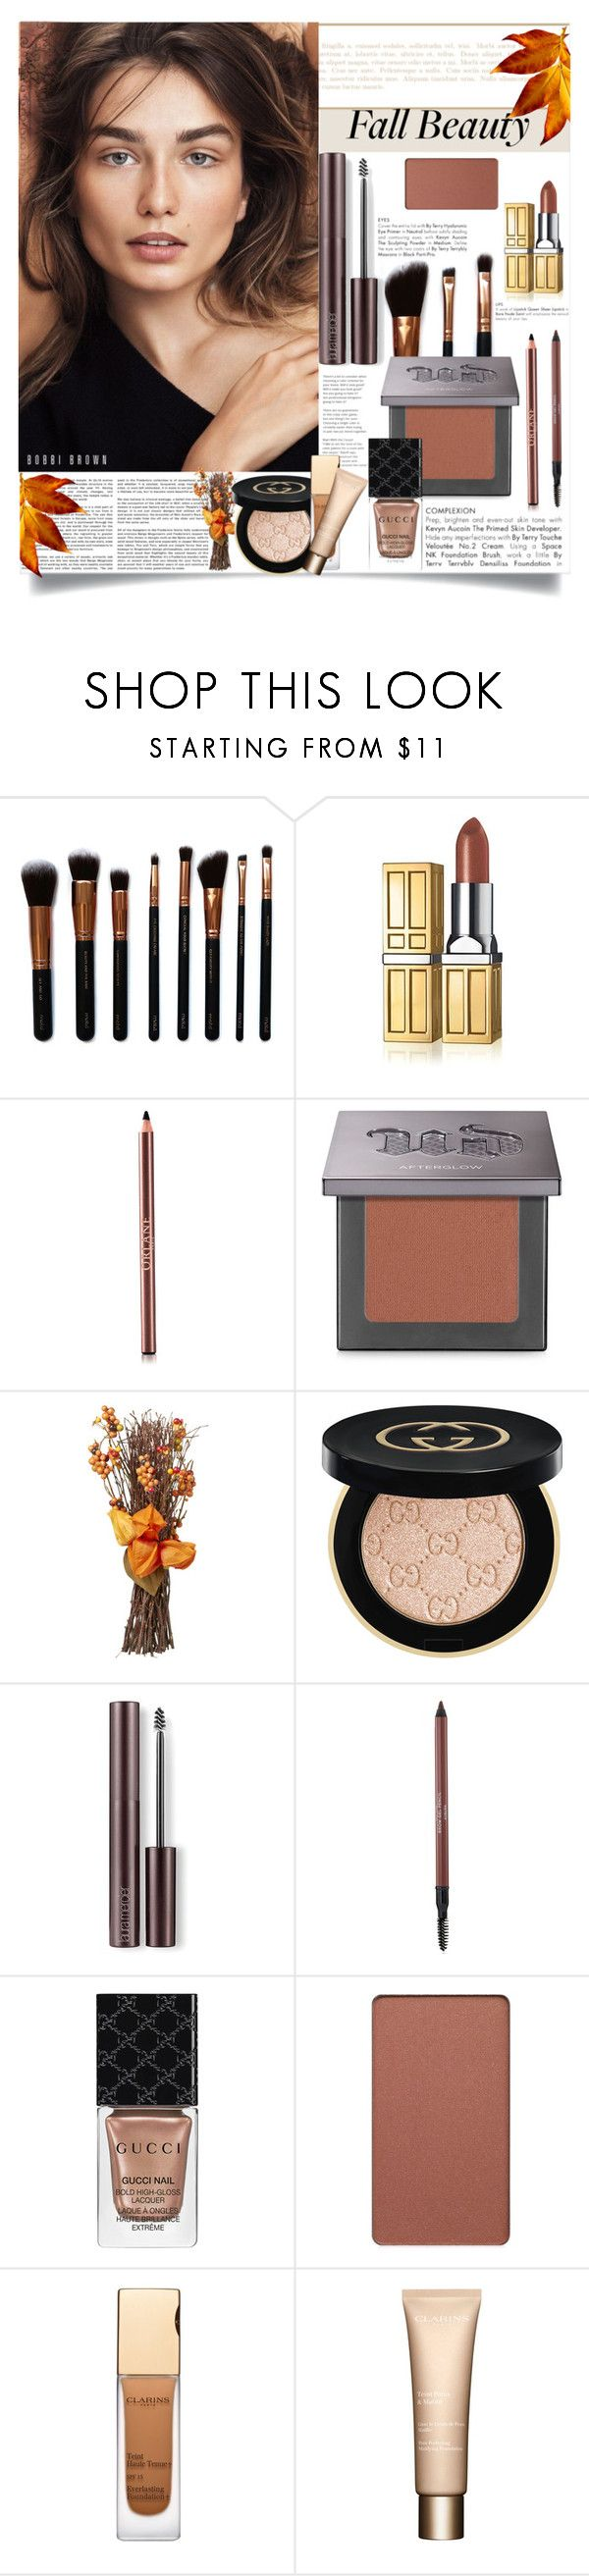 """""""Fall Beauty"""" by krystalkm-7 ❤ liked on Polyvore featuring beauty, M.O.T.D Cosmetics, Elizabeth Arden, Orlane, Bobbi Brown Cosmetics, Urban Decay, Gucci, Laura Mercier, Laura Geller and Inglot"""